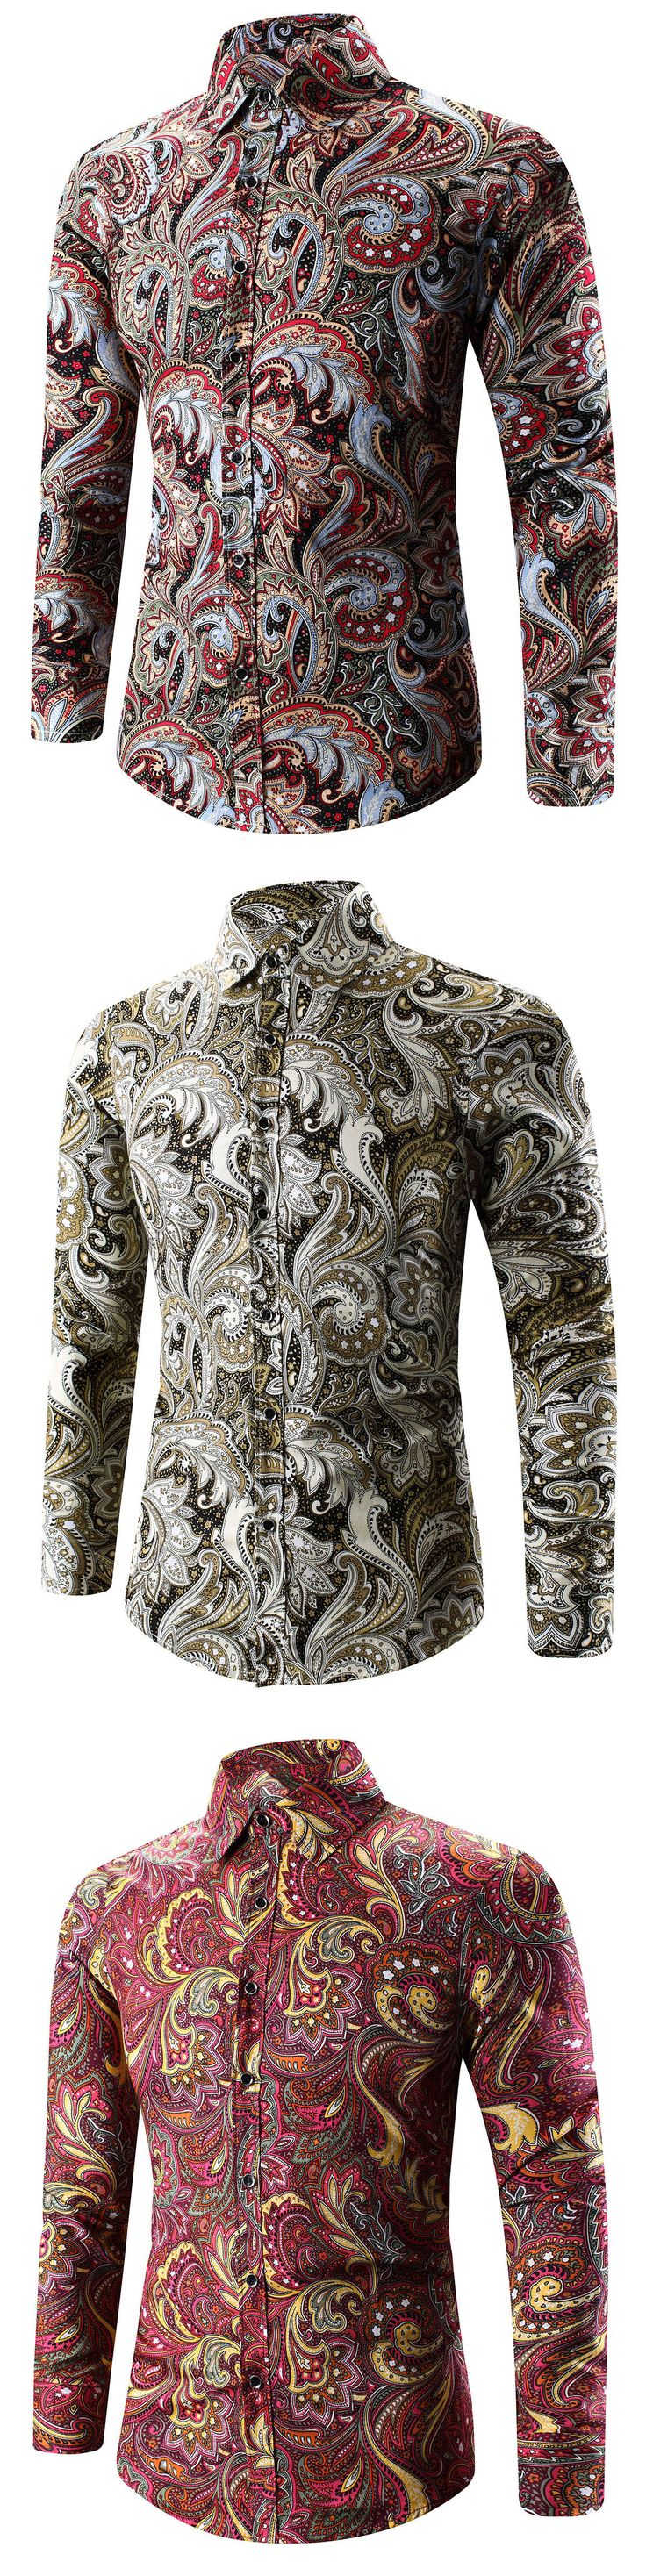 $6.99,Turn-Down Collar Long Sleeve Paisley Shirt | rosewholesale, rosewholesale for men, shirts, long sleeves | #rosewholesale #shirts #mensoutfit